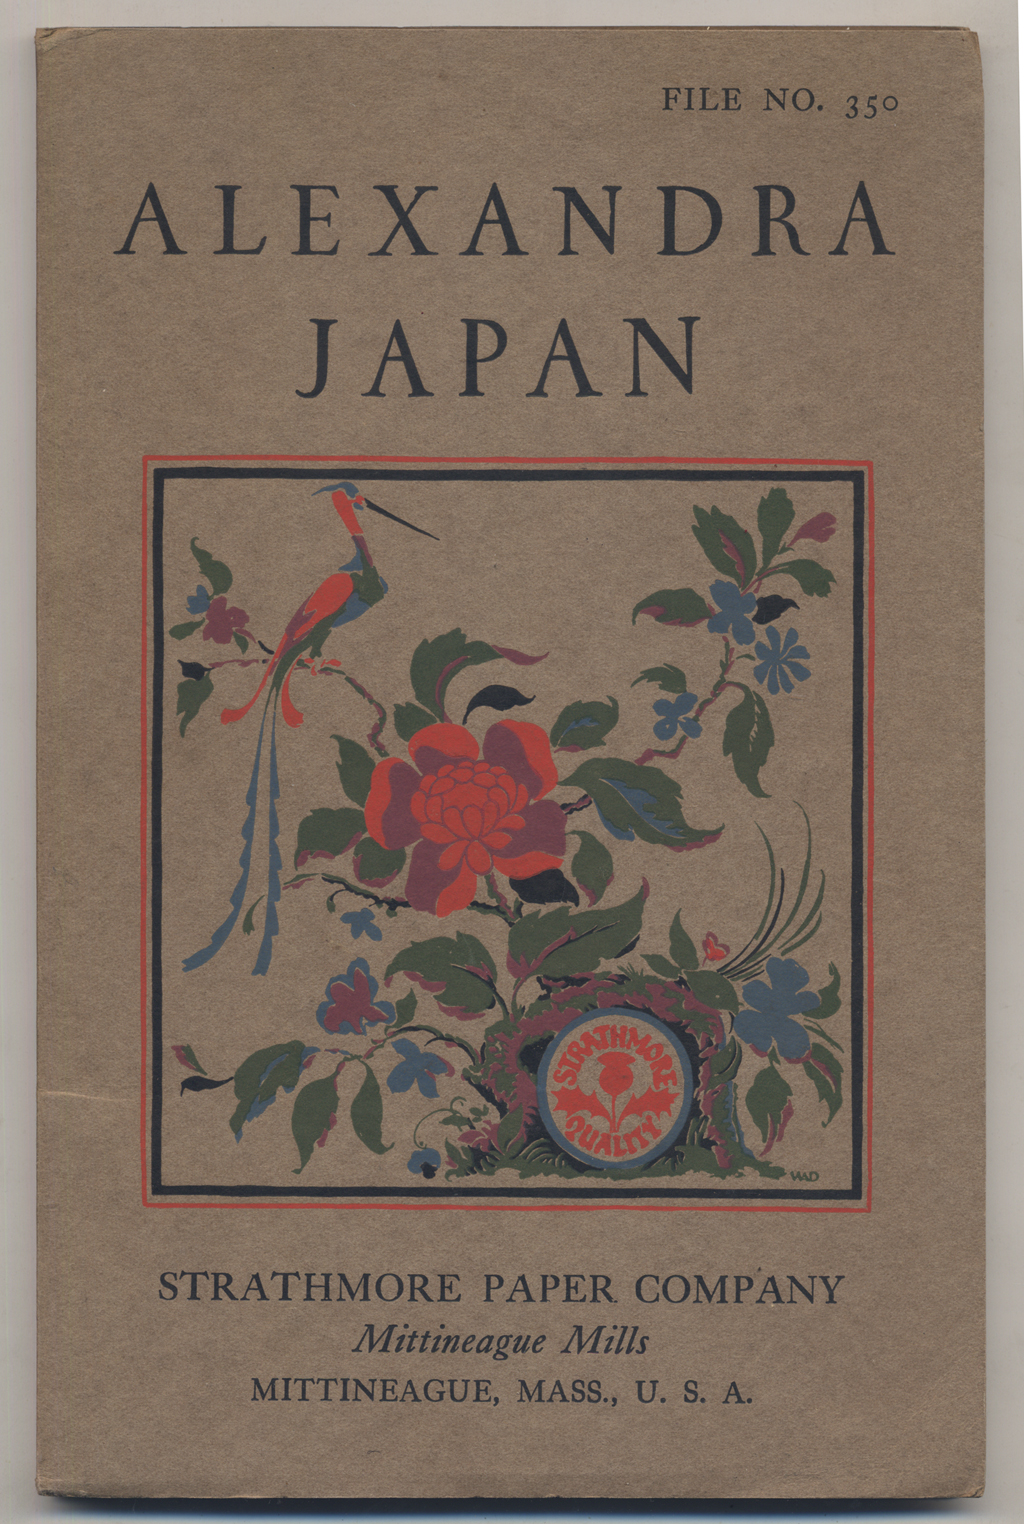 Alexandra Japan sample book (Strathmore Paper Co., 1919). Cover design by W.A. Dwiggins.